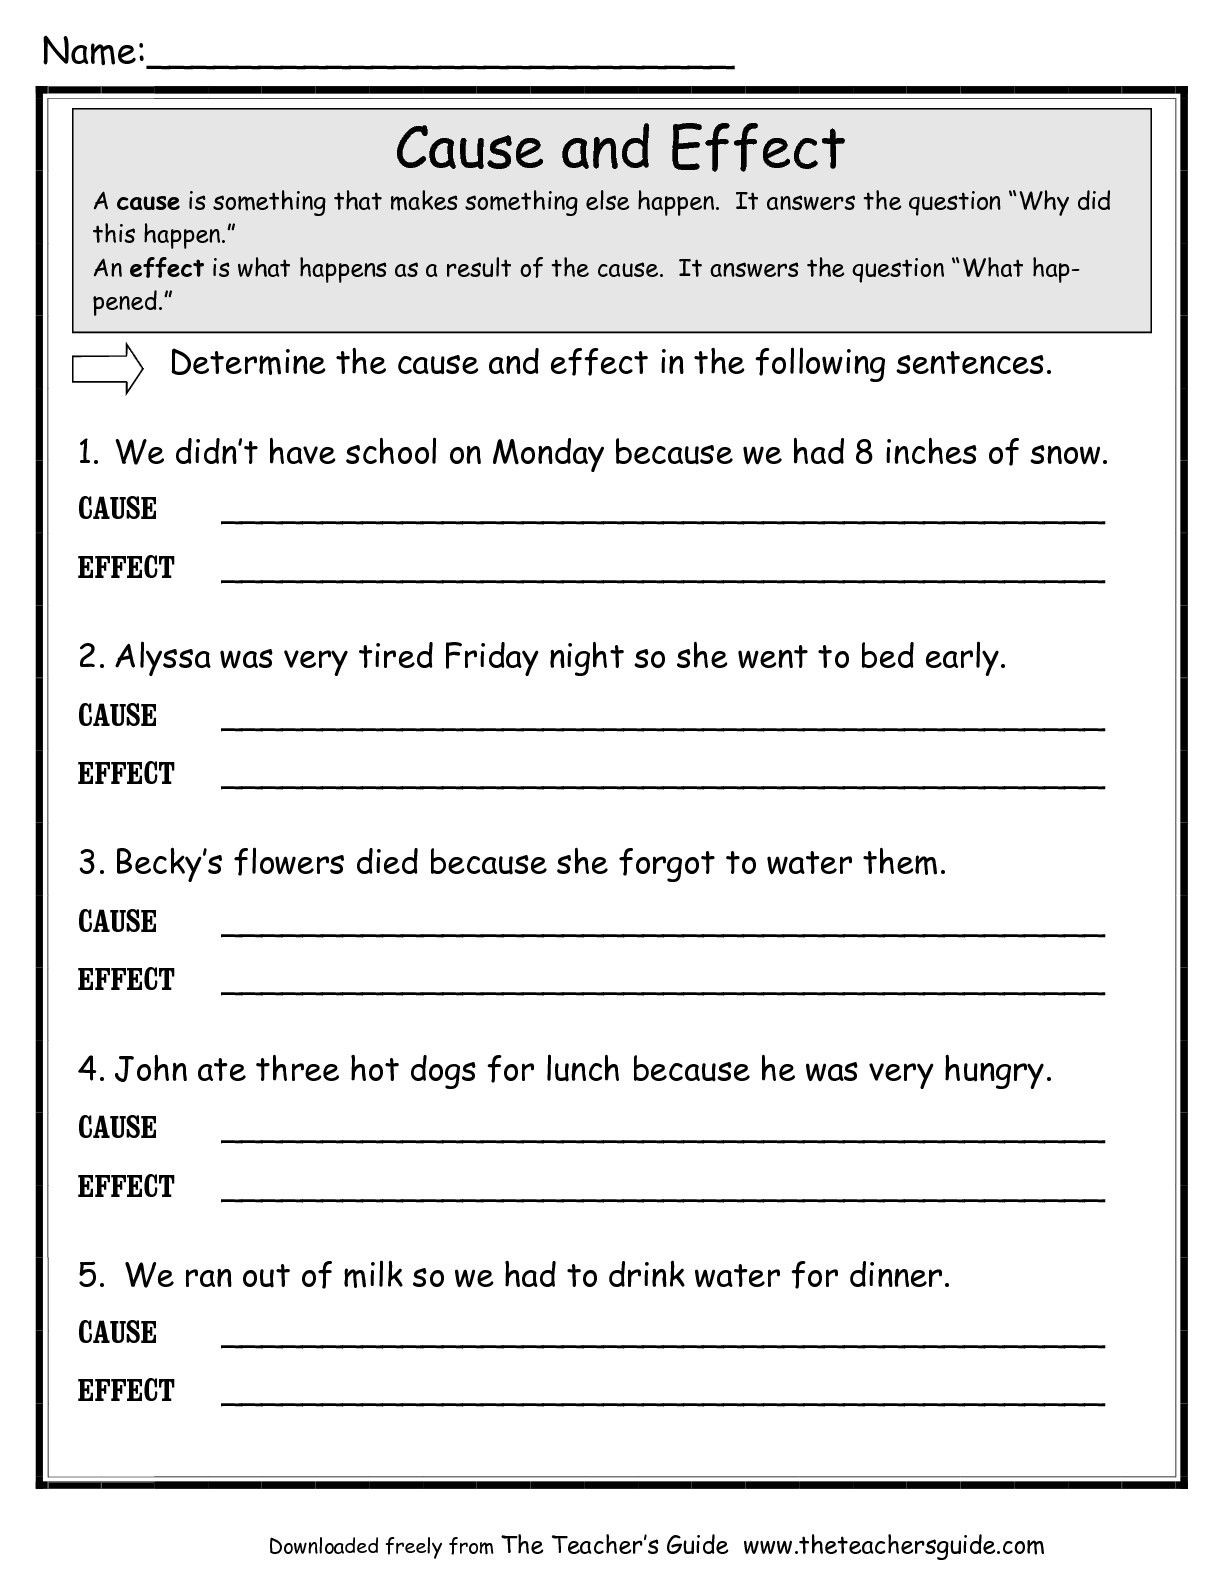 Middle School Science Worksheets Pdf Cause and Effect Worksheet Google Search